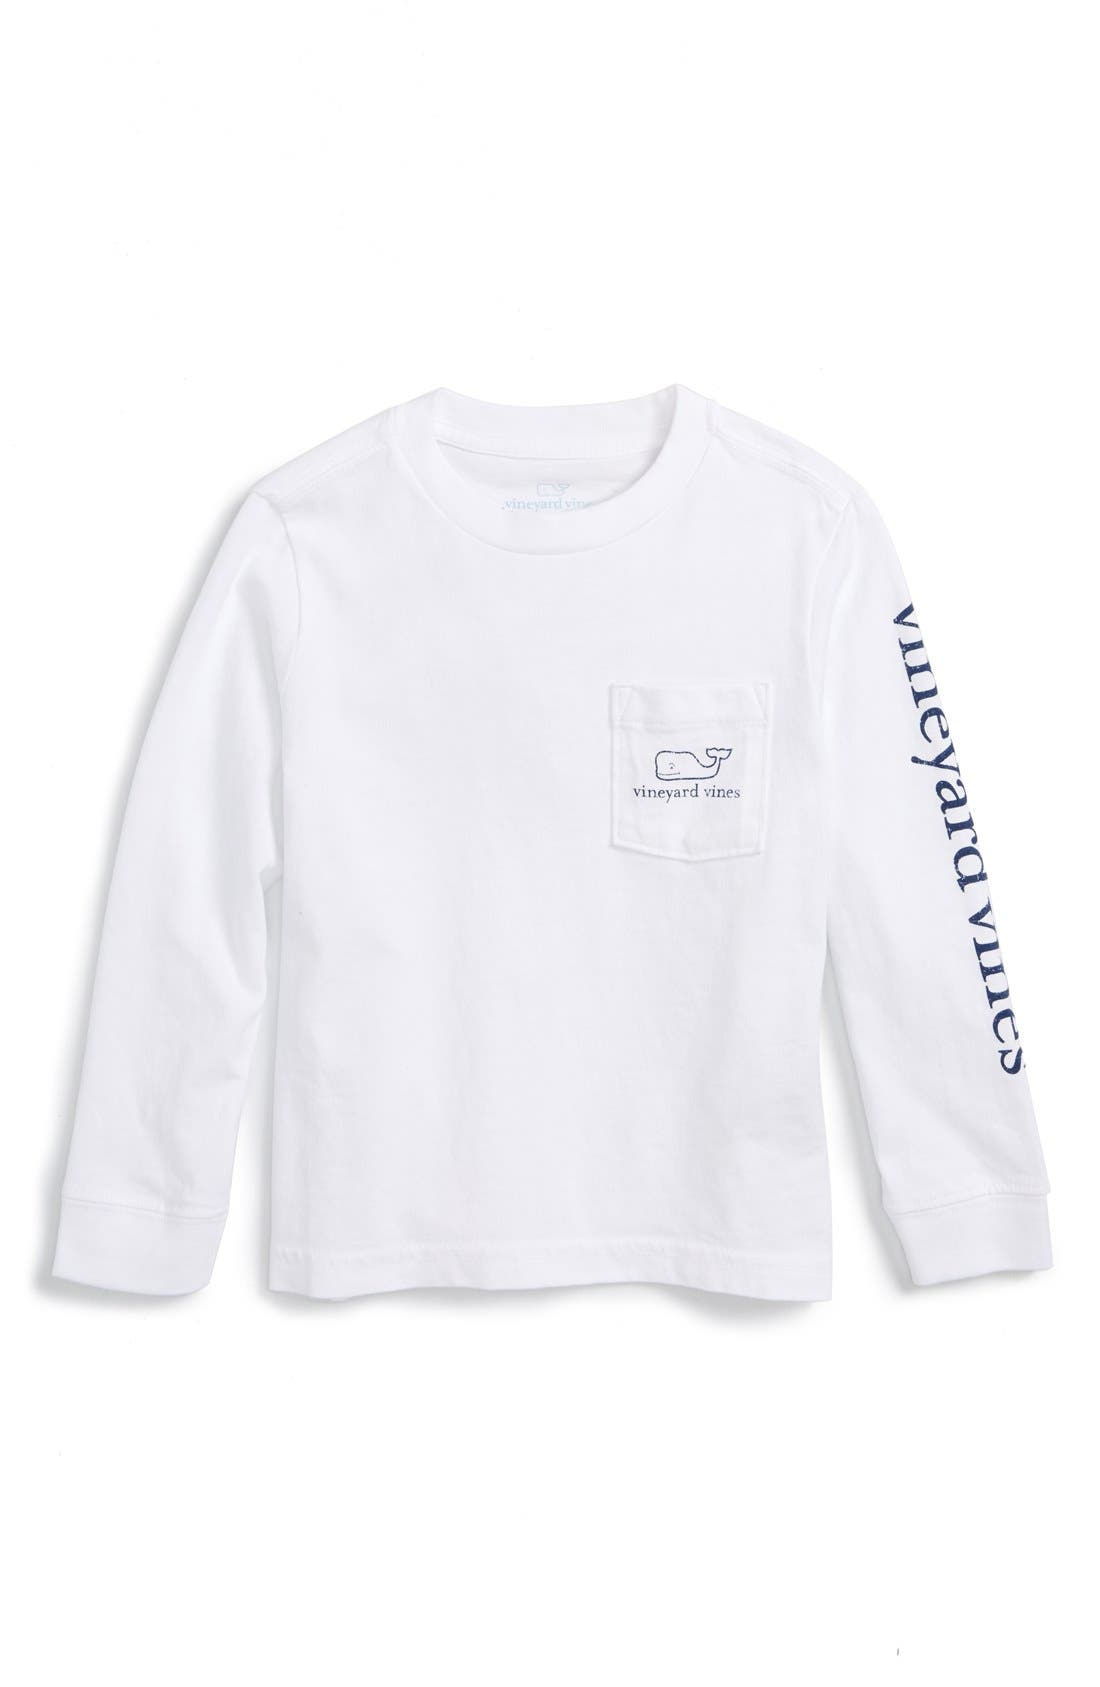 Alternate Image 1 Selected - vineyard vines Vintage Whale Graphic Long Sleeve T-Shirt (Toddler Boys & Little Boys)